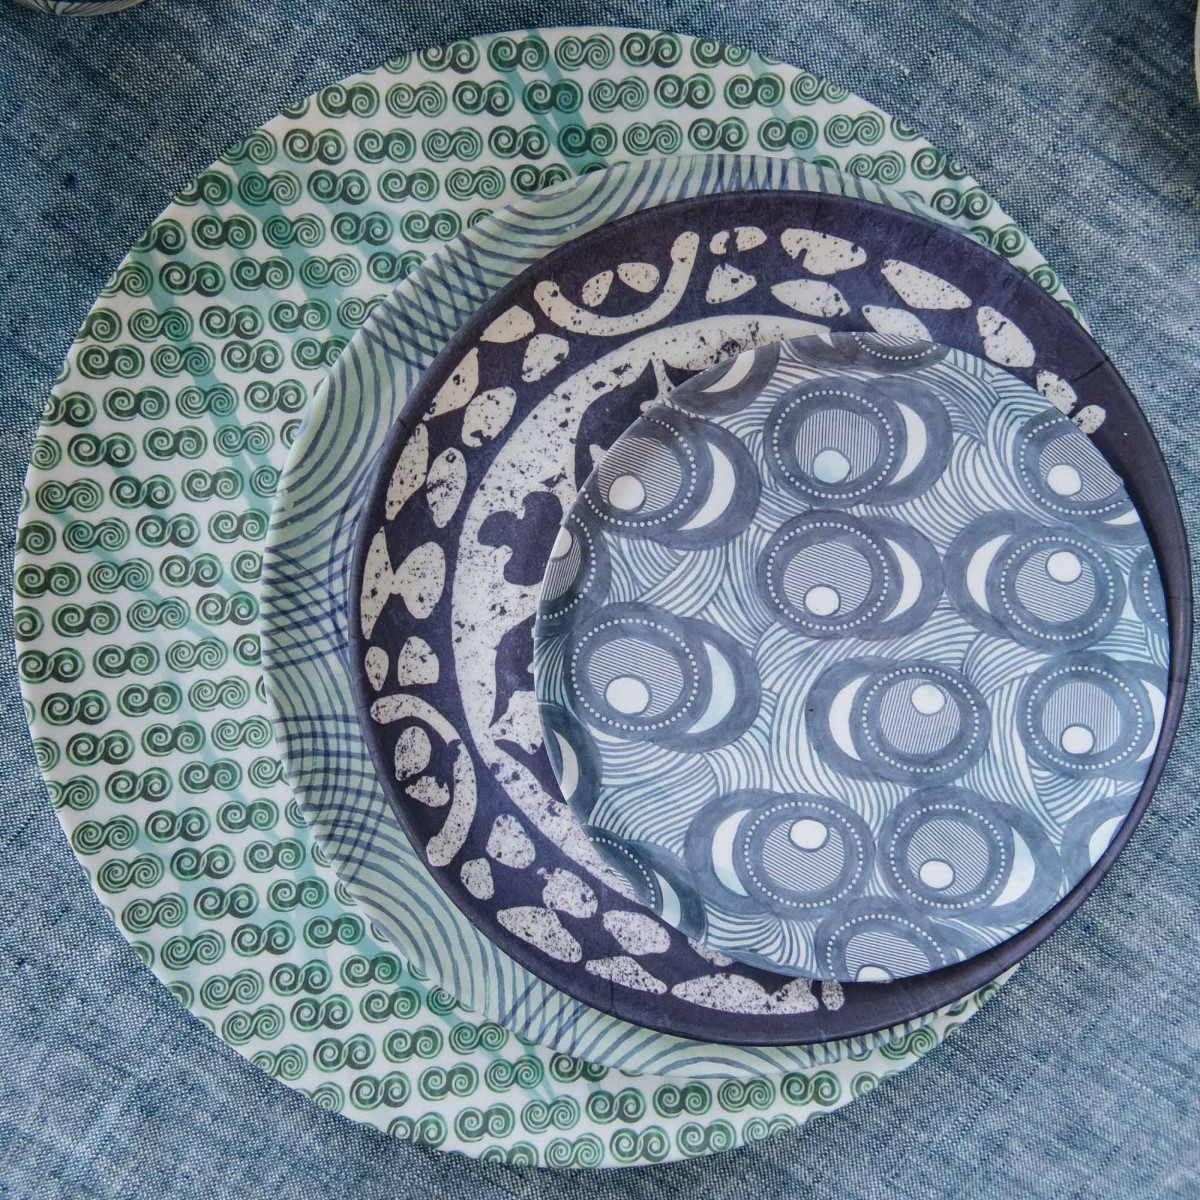 Bamboo Plates from Burford Garden Company